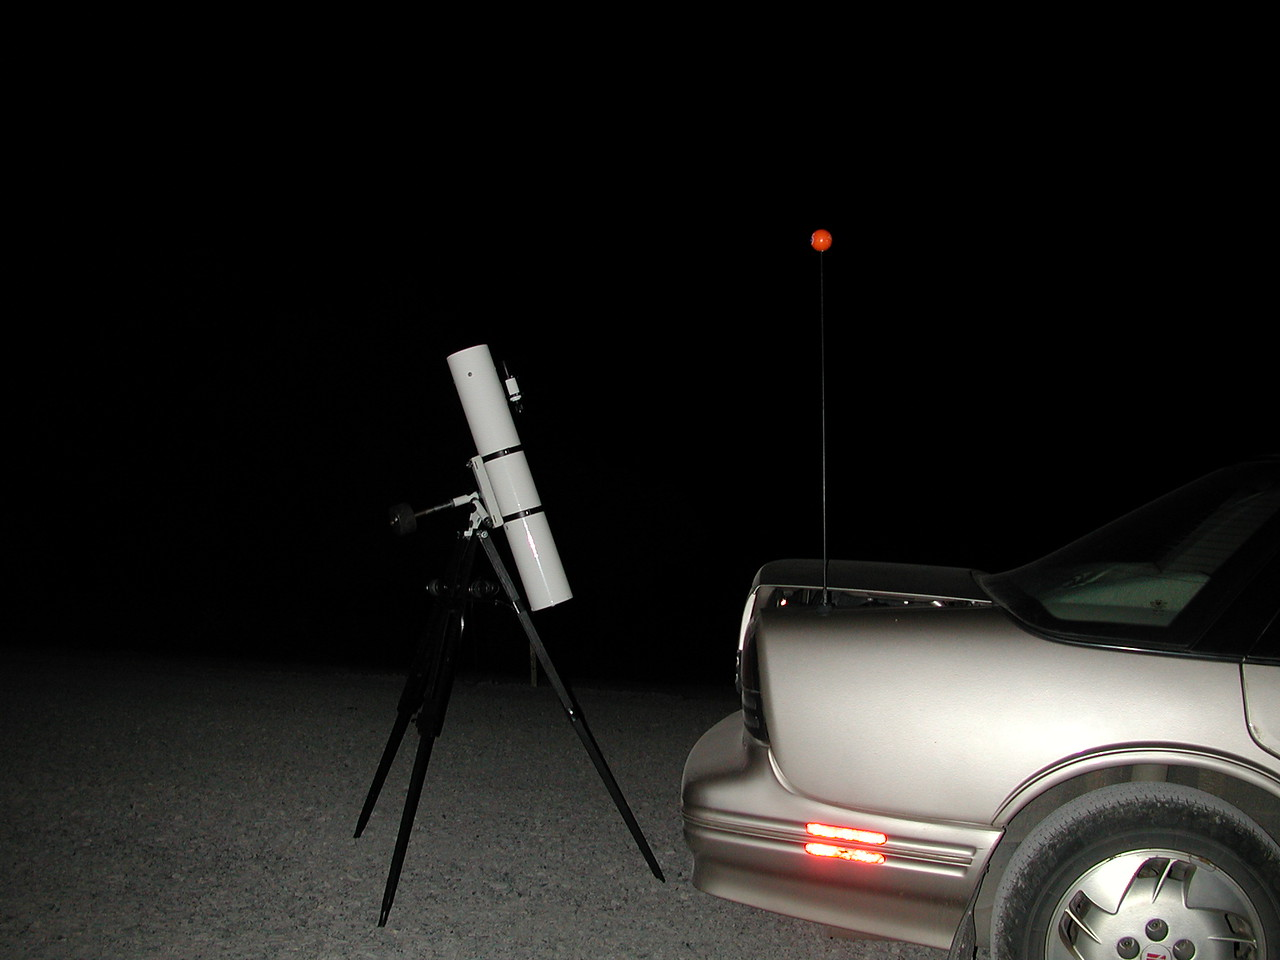 The observing setup is light and simple and easily fits into the trunk of my Oldsmobile.